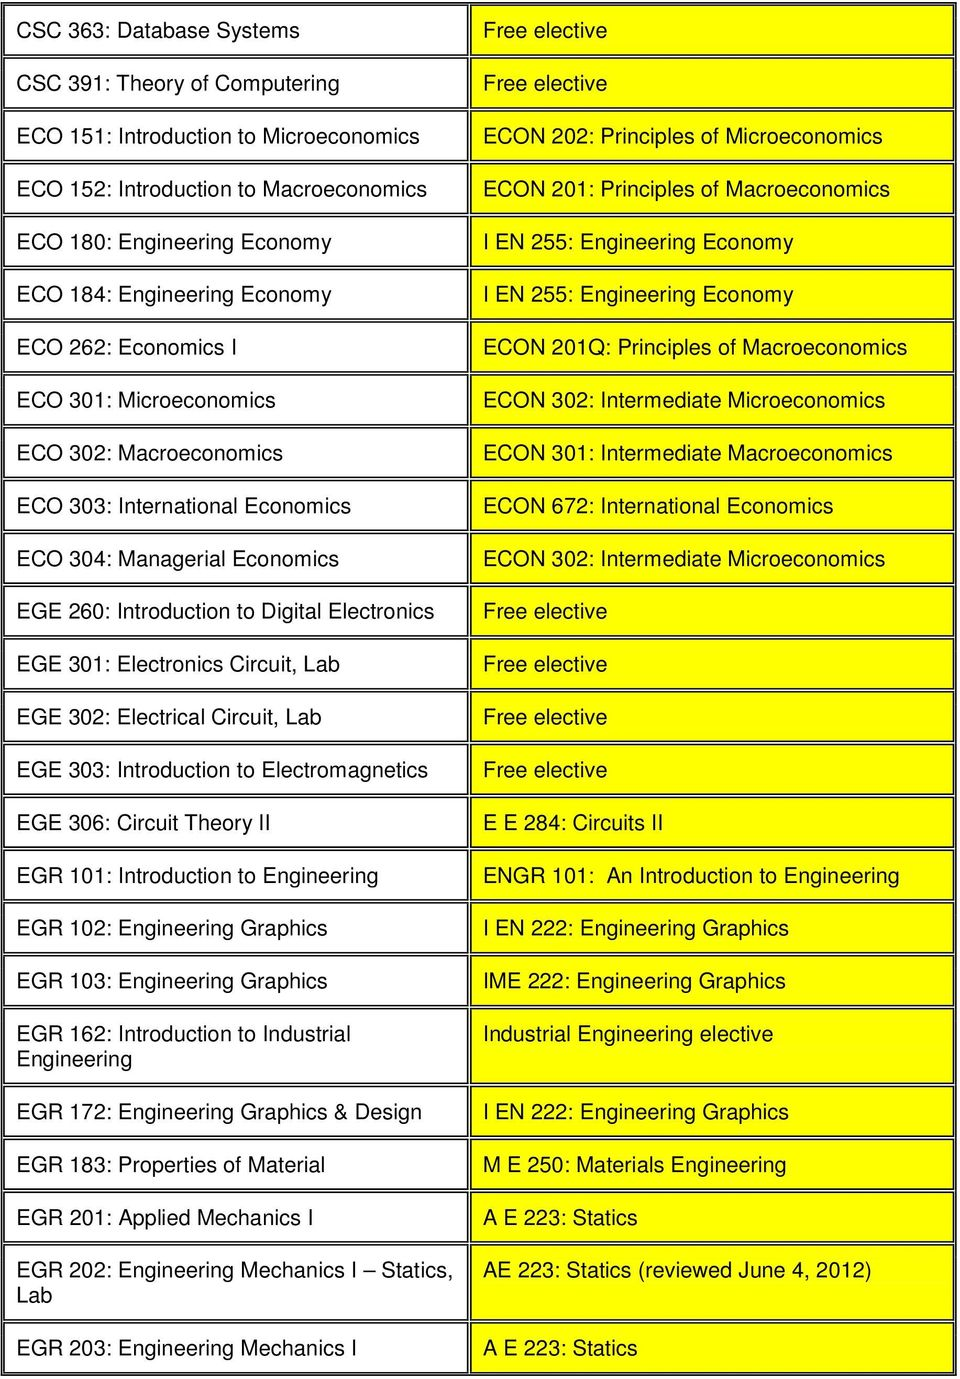 Circuit, EGE 302: Electrical Circuit, EGE 303: Introduction to Electromagnetics EGE 306: Circuit Theory II EGR 101: Introduction to Engineering EGR 102: Engineering Graphics EGR 103: Engineering